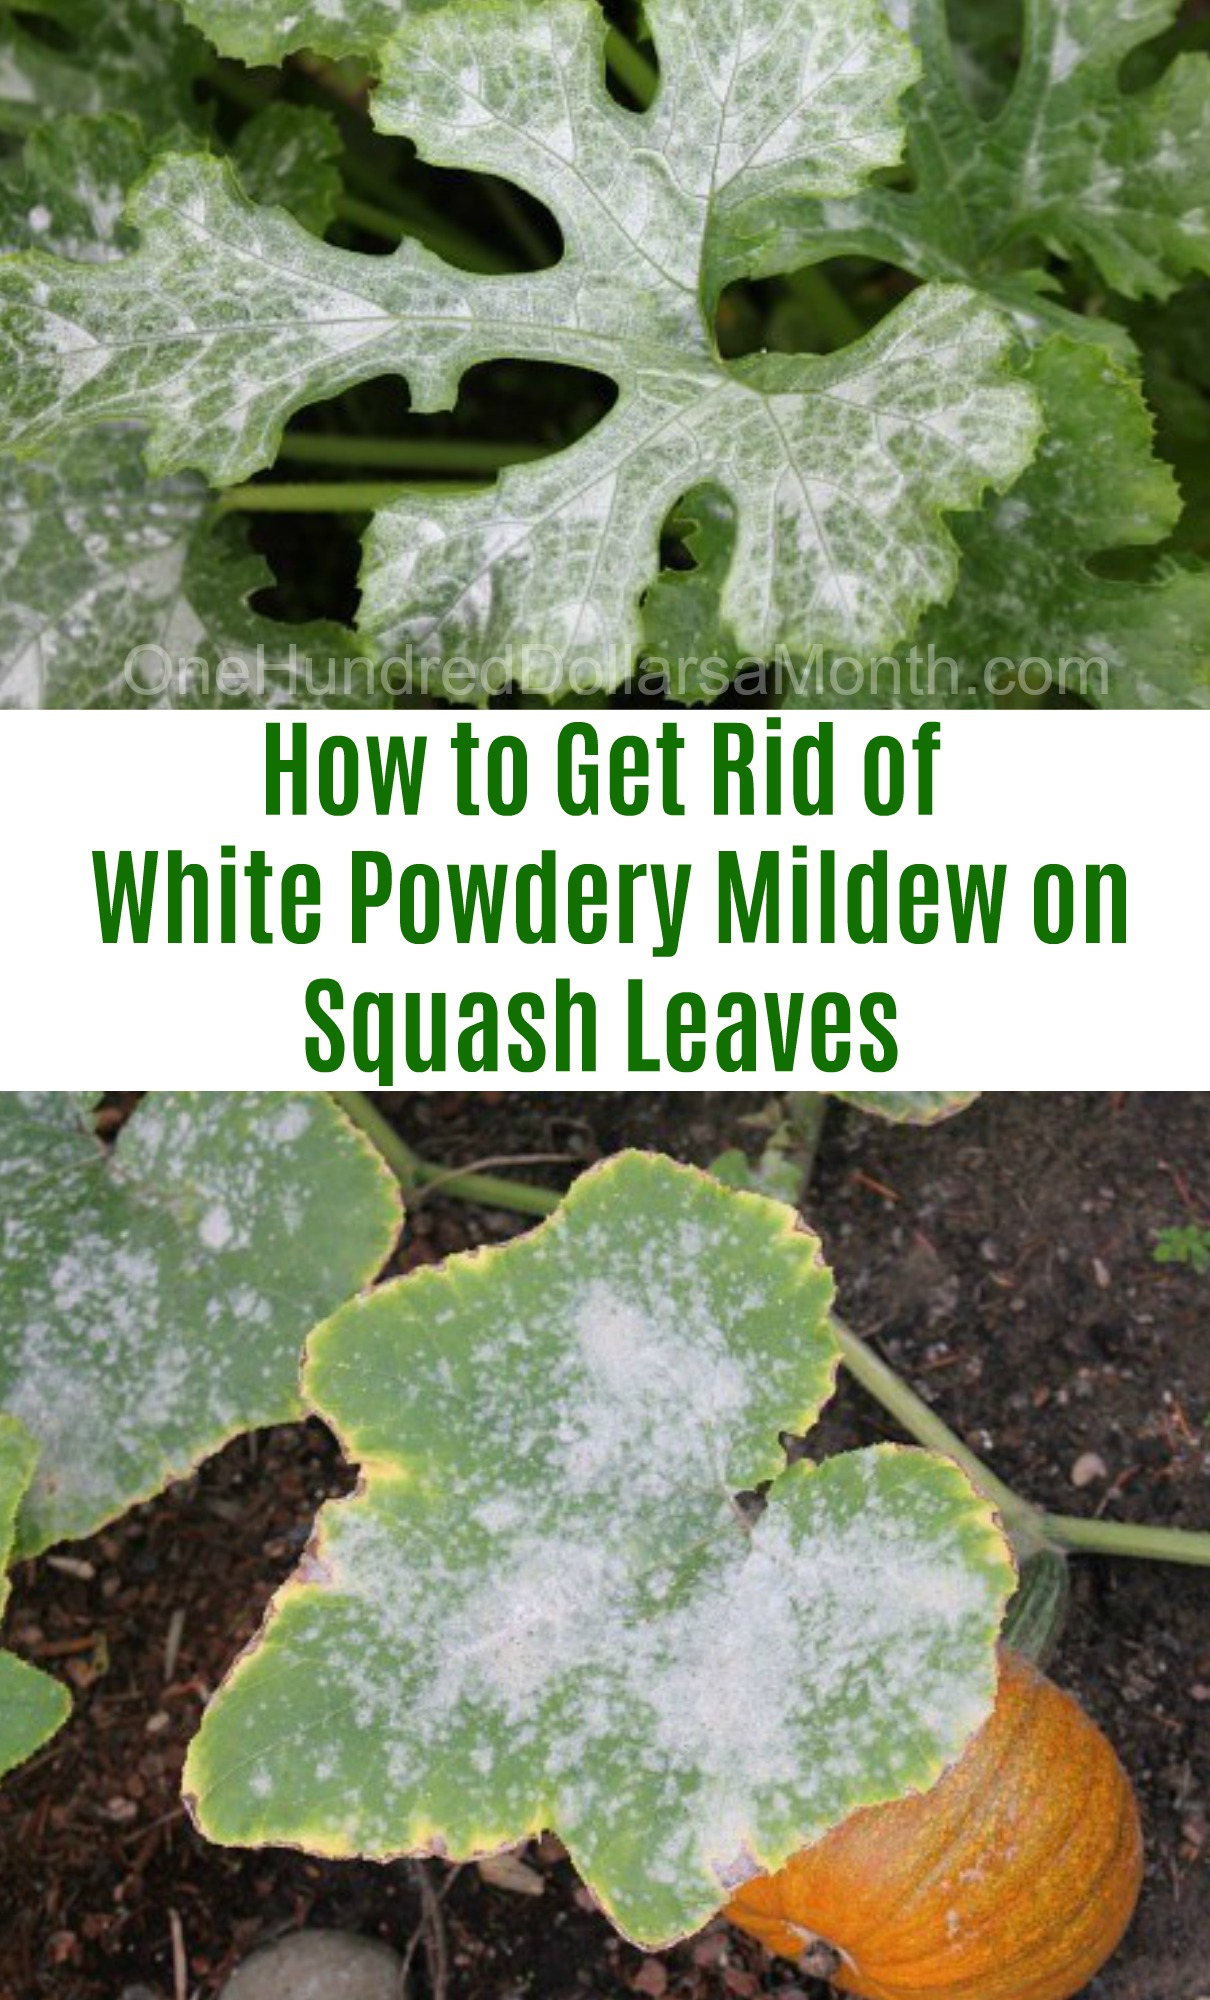 How to Get Rid of White Powdery Mildew on Squash Leaves - One